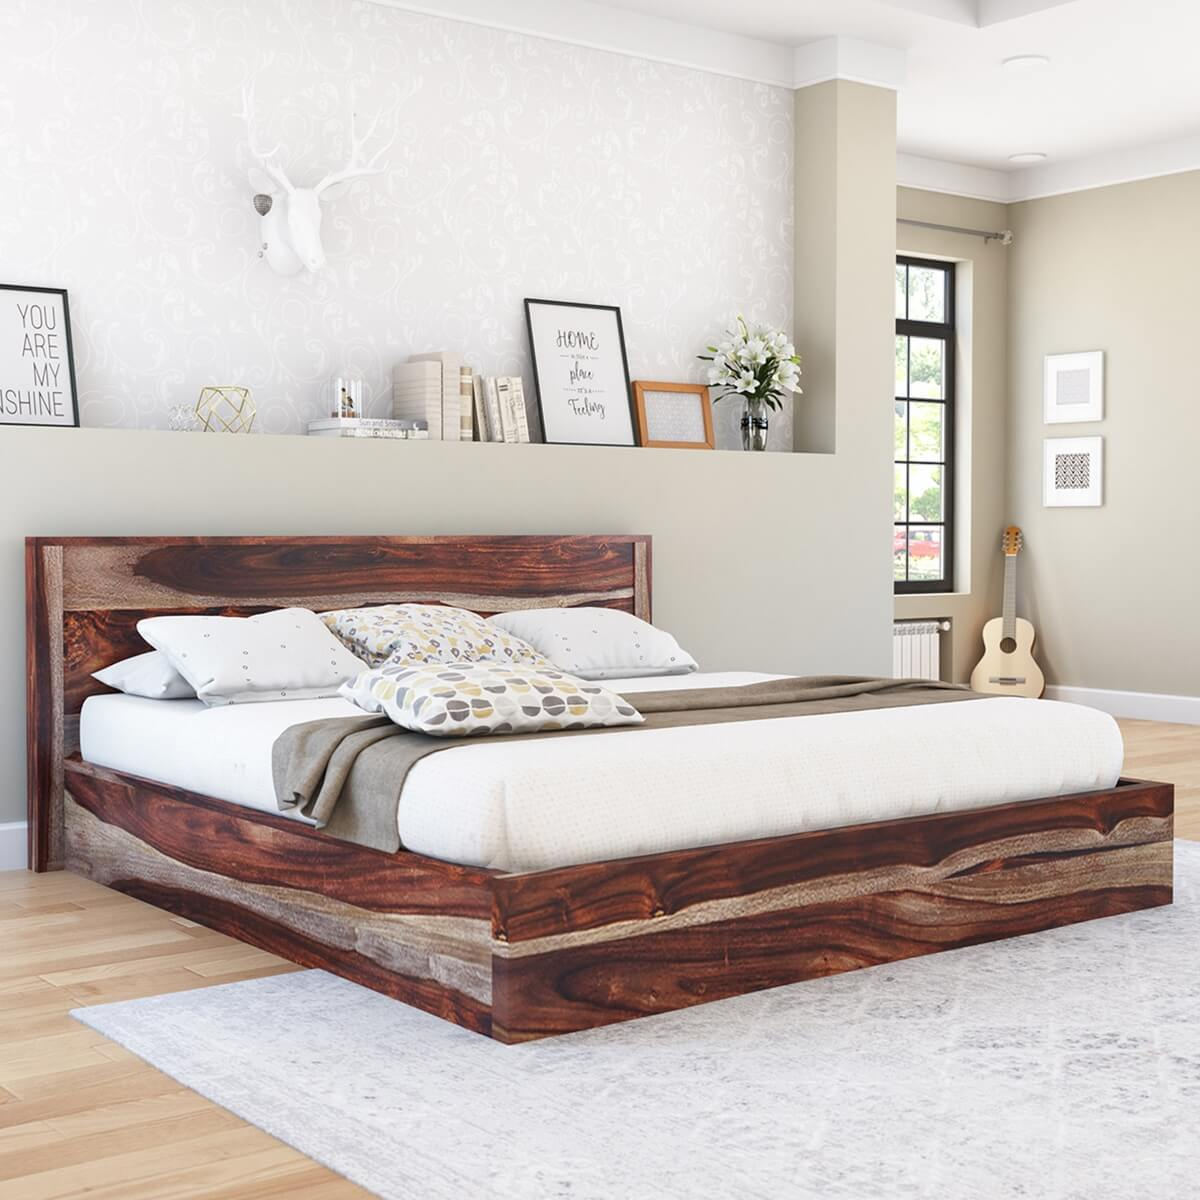 jamaica rustic solid wood handcrafted platform bed